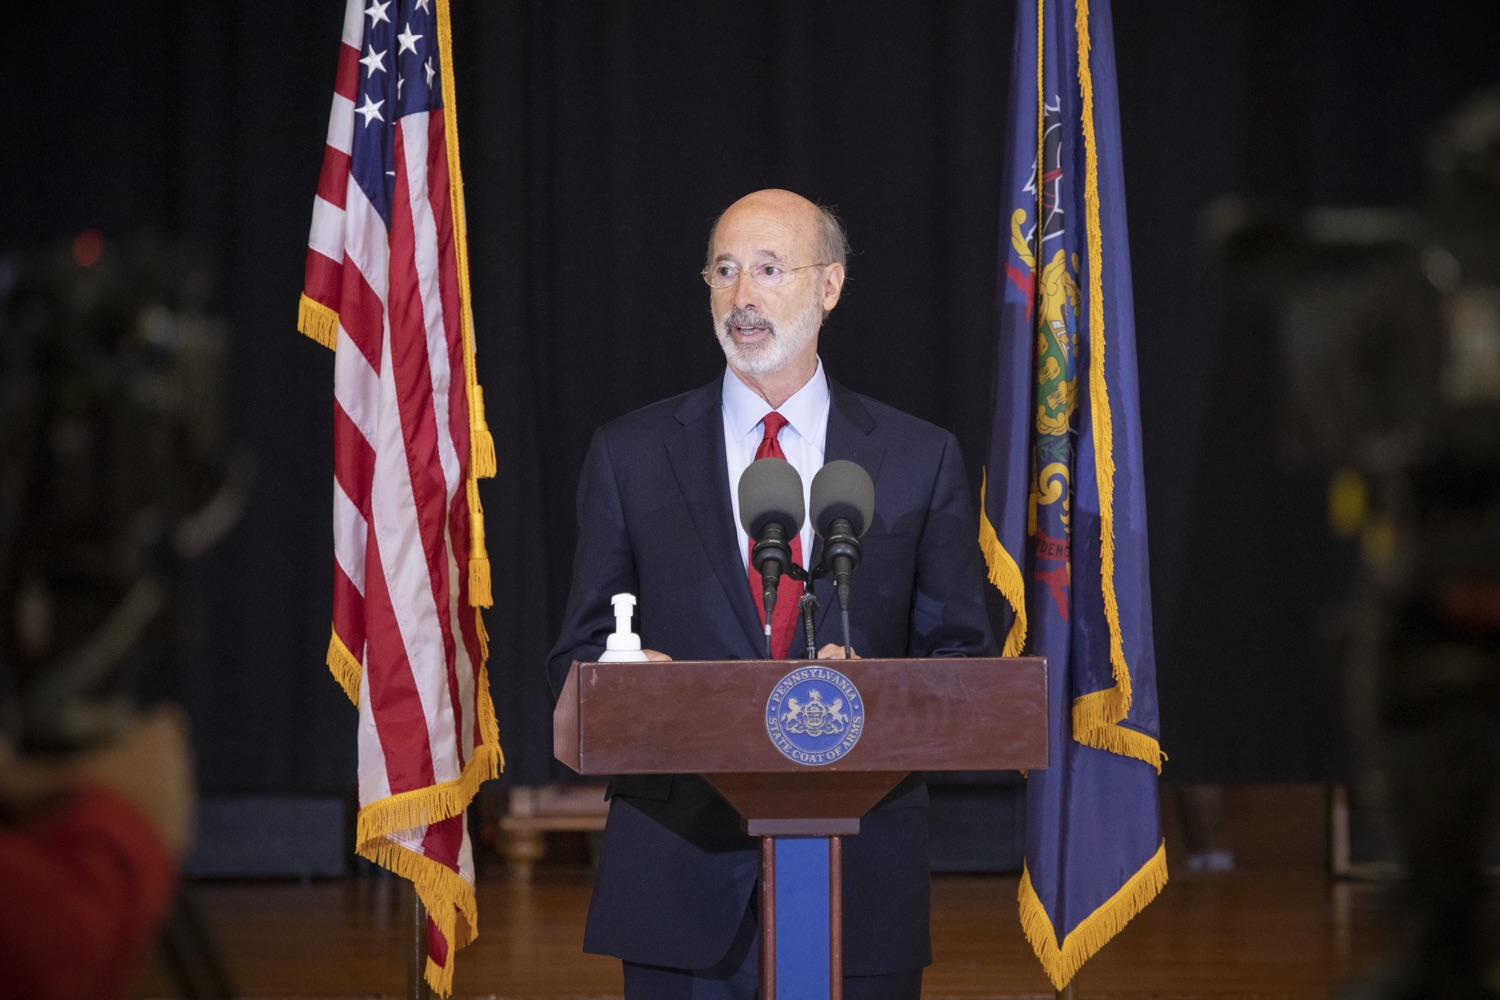 "<a href=""https://filesource.wostreaming.net/commonwealthofpa/photo/18310_gov_adult_use_cannabis_dz_009.jpg"" target=""_blank"">⇣ Download Photo<br></a>Governor Tom Wolf speaks to the press.Governor Tom Wolf visited The Mountain Center in Tobyhanna, Monroe County today to talk about the economic growth potential and restorative justice benefits of legalizing adult-use cannabis, something the state General Assembly has not yet done despite multiple requests from the governor and Lieutenant Governor John Fetterman to take up legislation this fall.  Tobyhanna, PA  October 13, 2020"